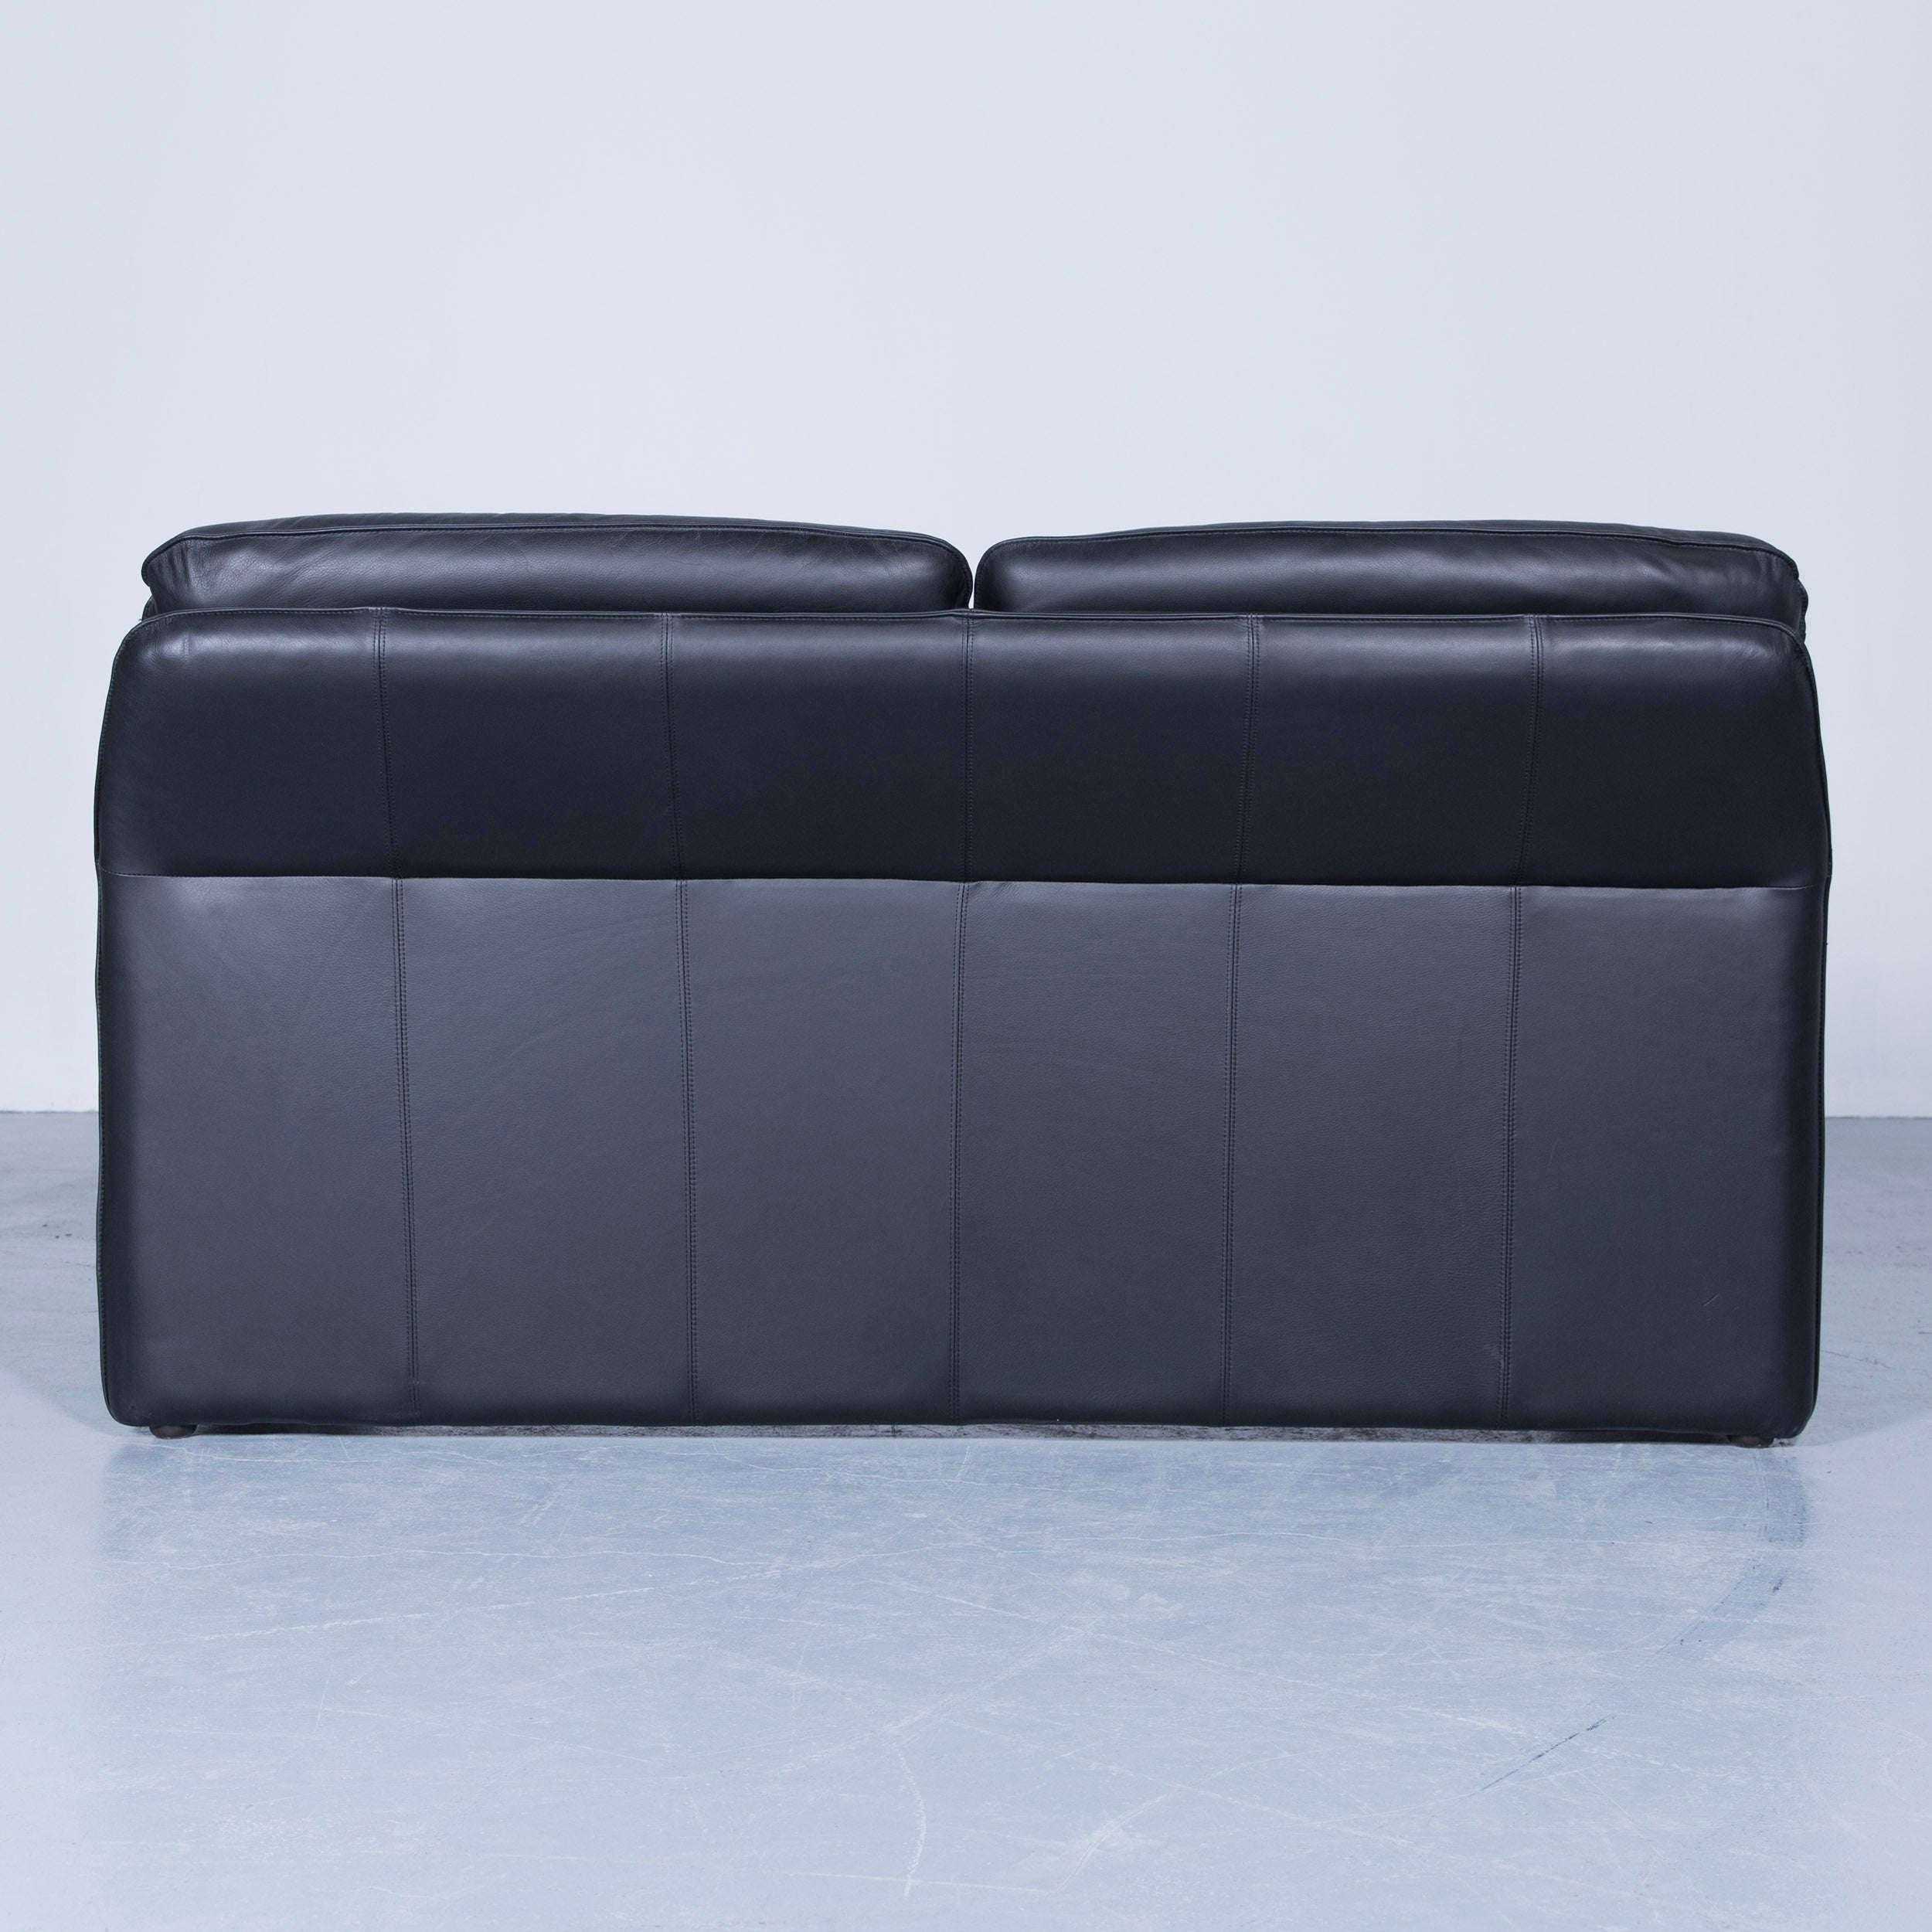 Laauser Atlanta Designer Sofa Leather Black Two-Seat Couch ...